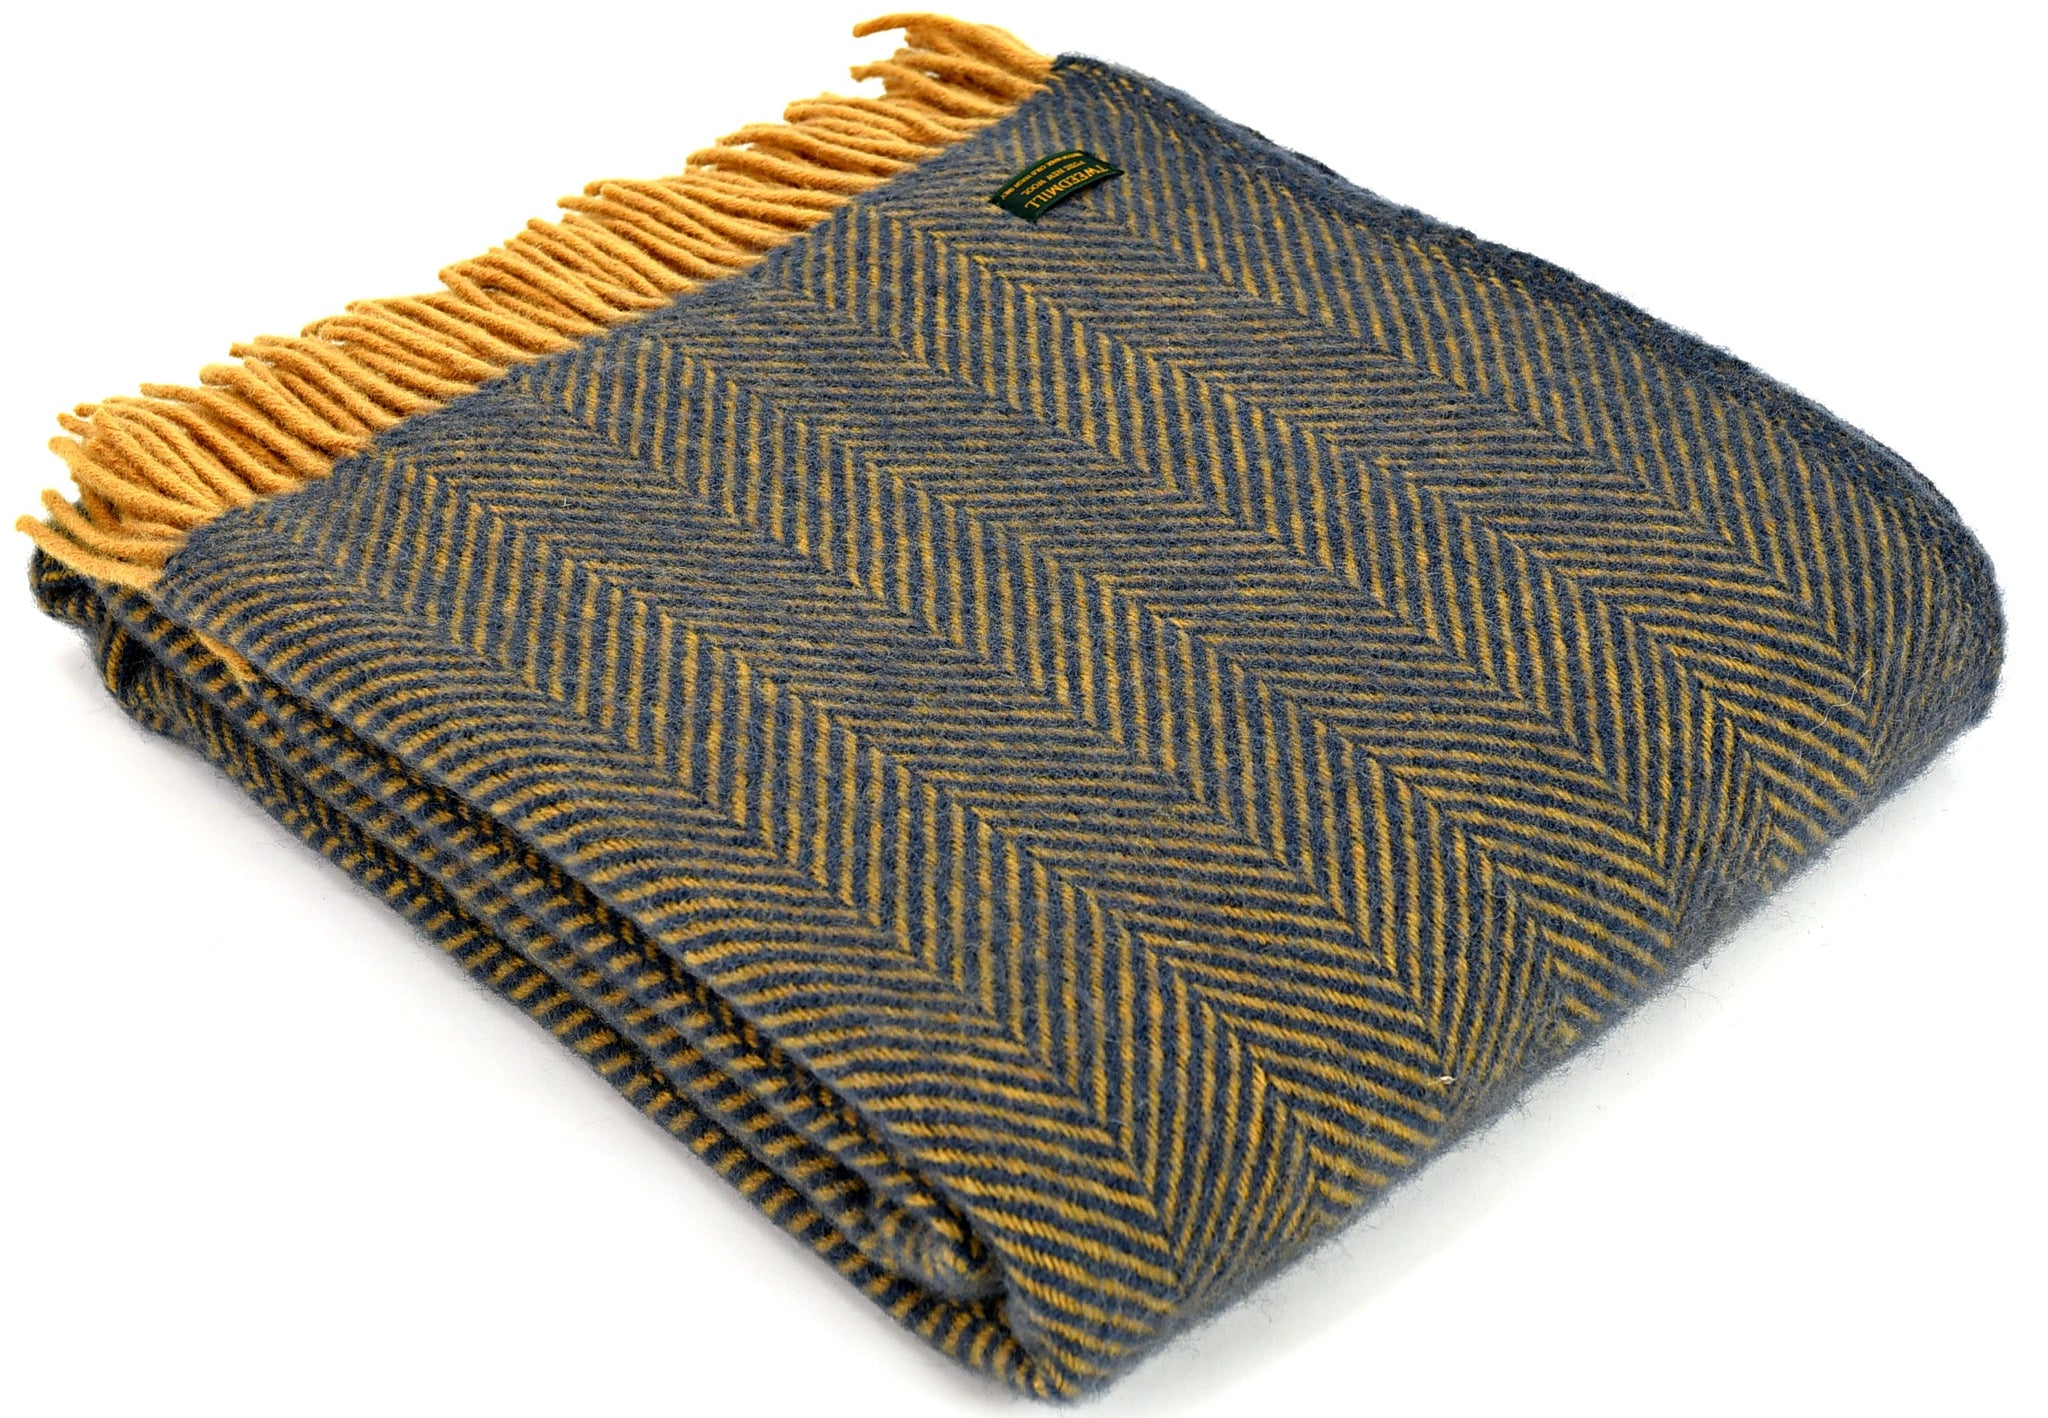 Tweedmill Navy and Mustard Herringbone Wool Blanket Throw